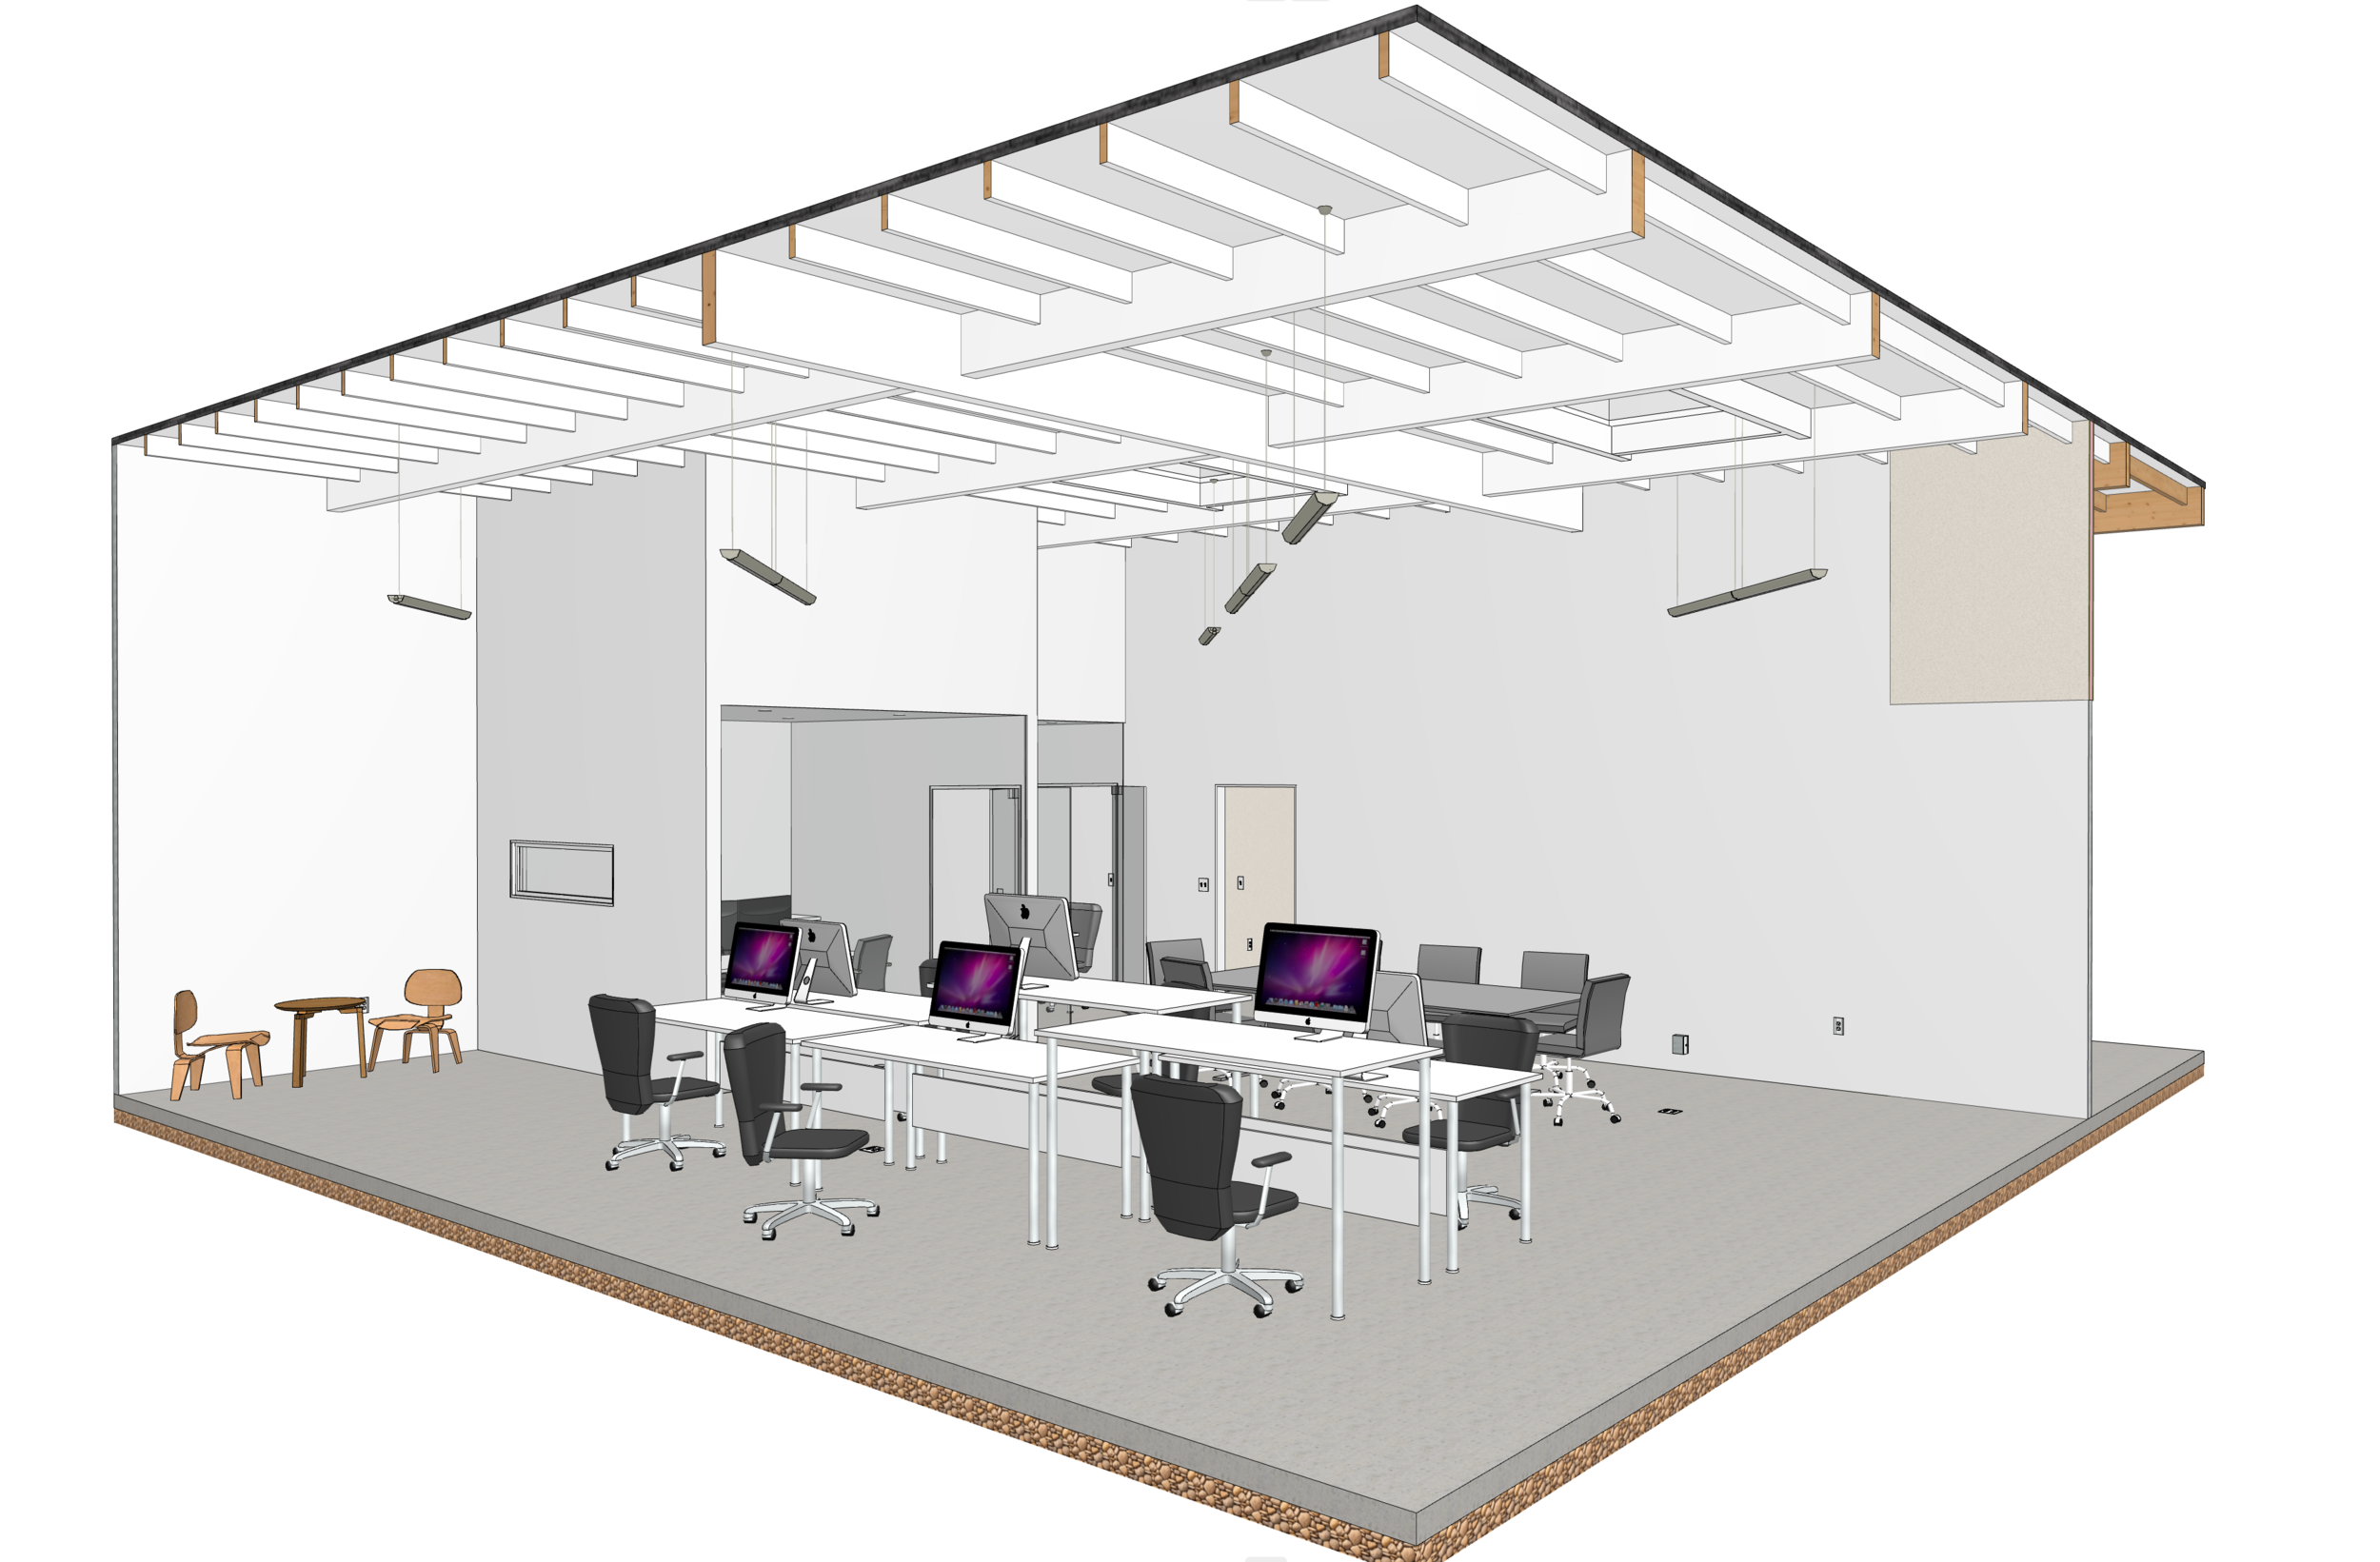 New Headquarters - We're expanding our footprint - scaling up from a one person operation to an integrated Design-Build practice with 2-3 design staff, support staff and Construction Management Services with Mission City Construction under one roof!